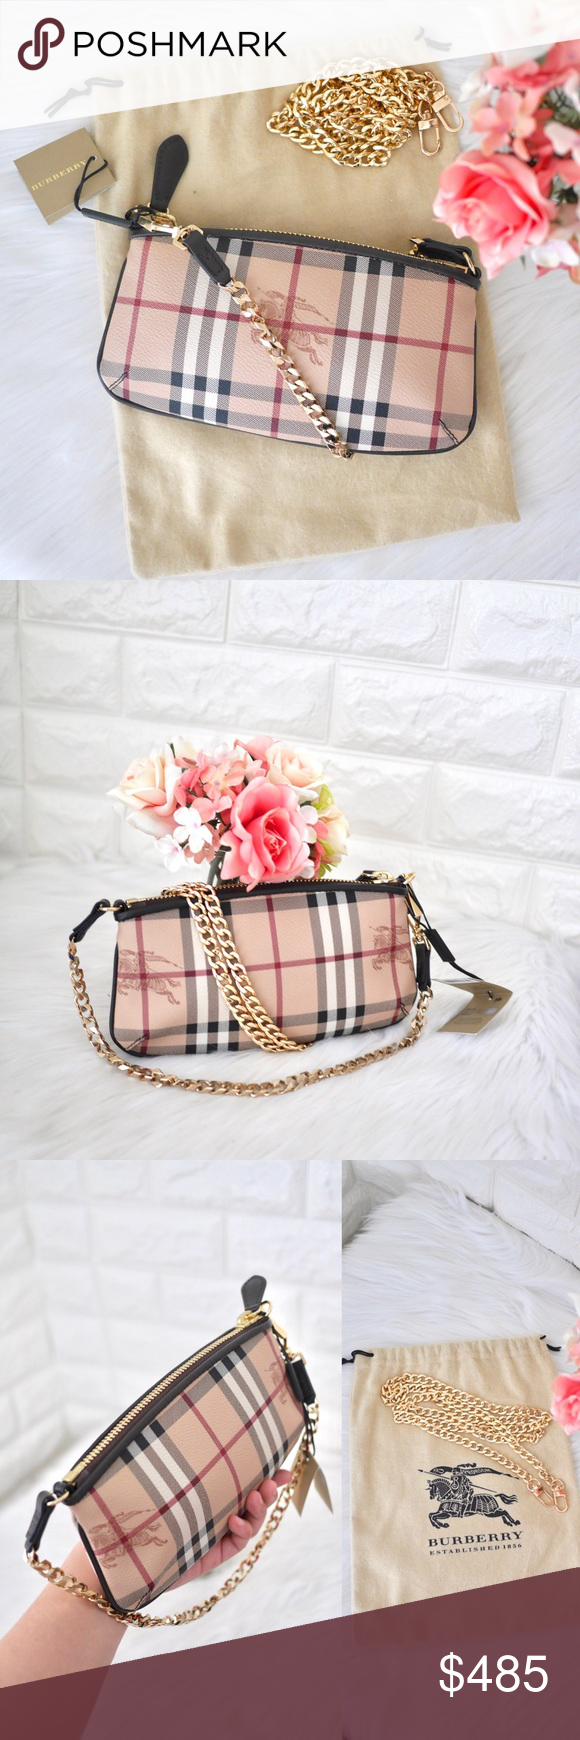 684a5f944283 💖NWT Burberry Haymarket Clara Wristlet 🌿BRAND NEW WITH TAG. ✓️Comes with  Burberry